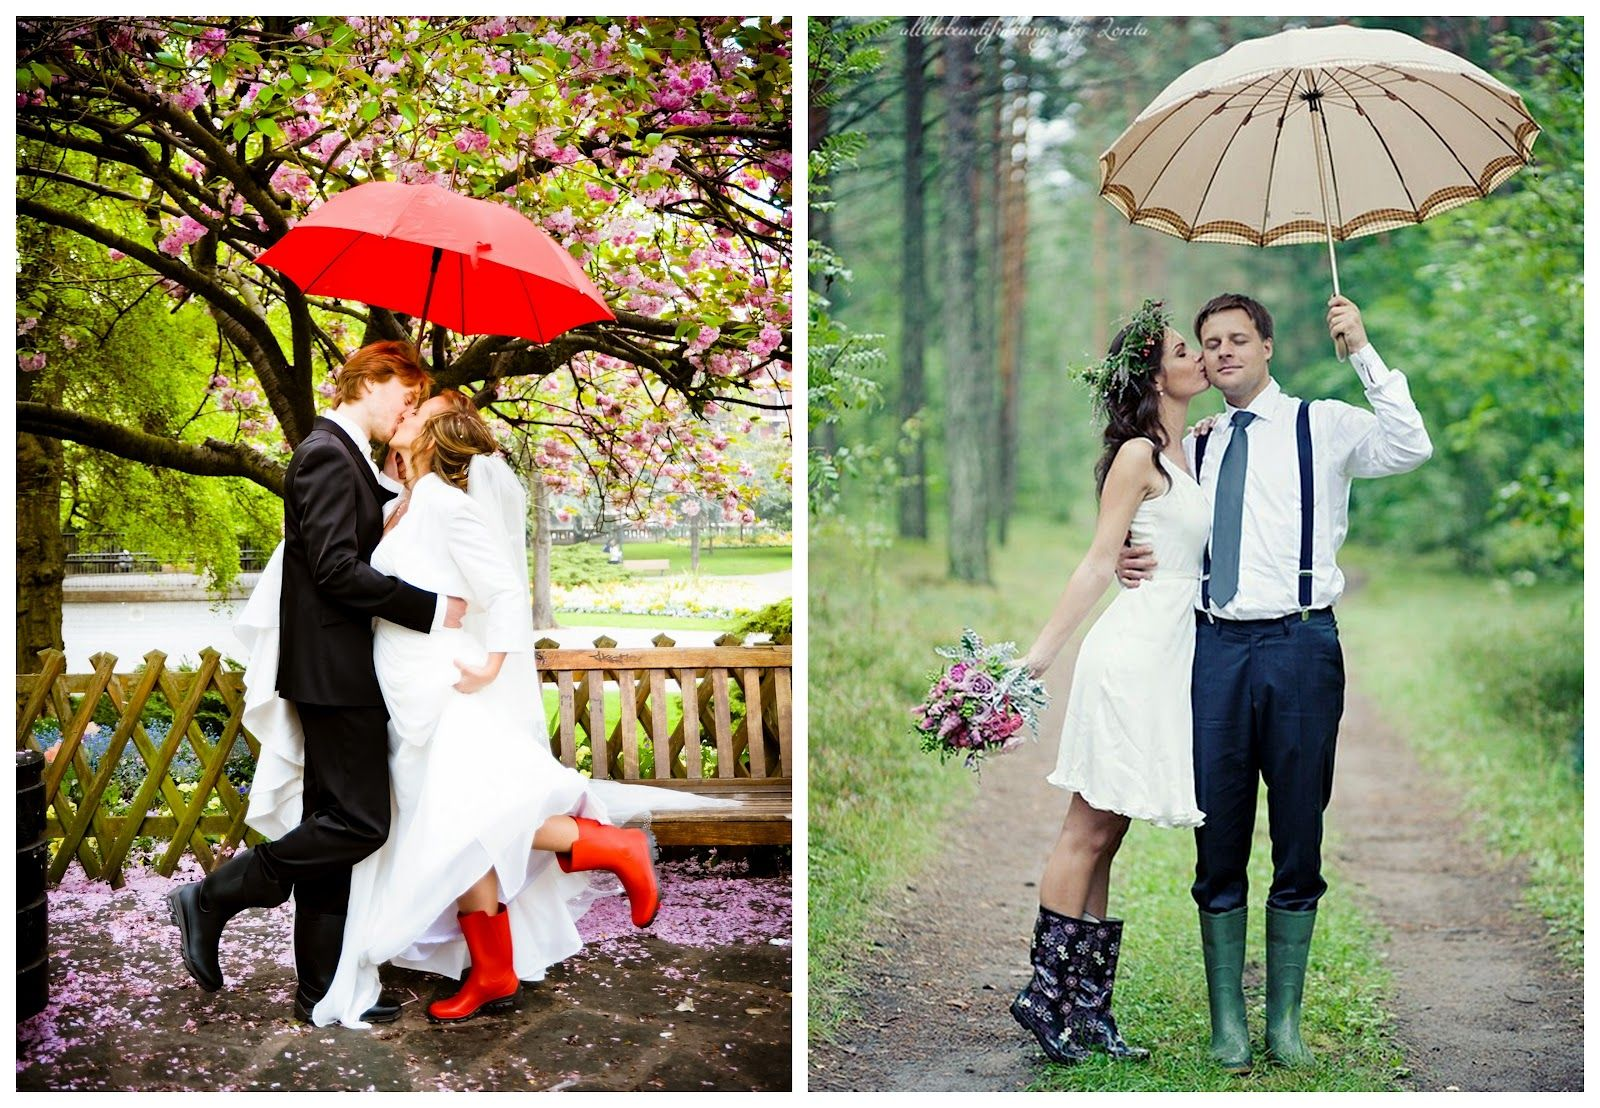 25 fun photo poses for your wedding day wedding pinterest 25 fun photo poses for your wedding day junglespirit Images